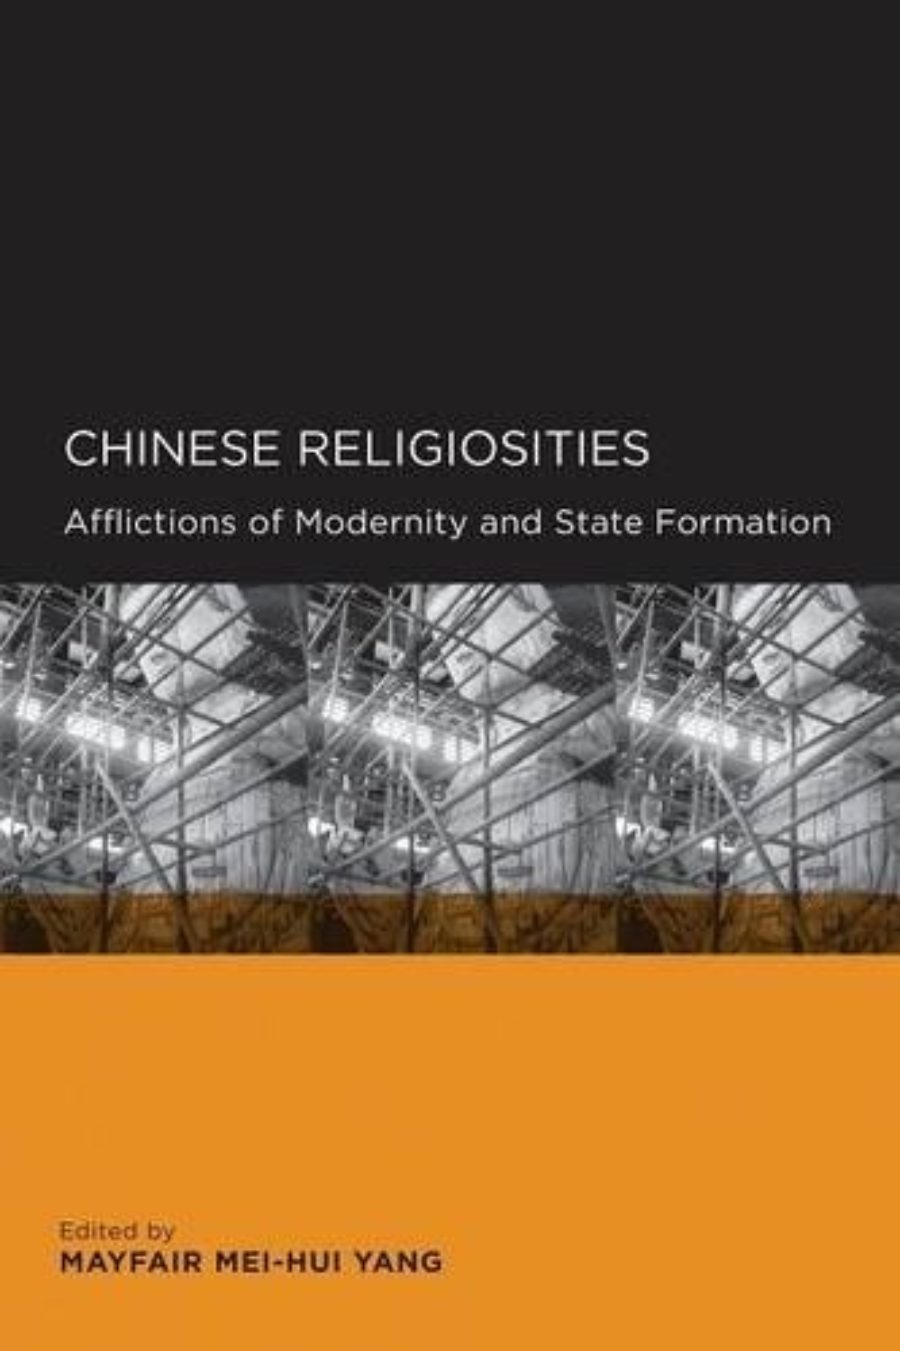 Cover of Chinese Religiosities: Afflictions of Modernity and State Formation (Global, Area, and International Archive)